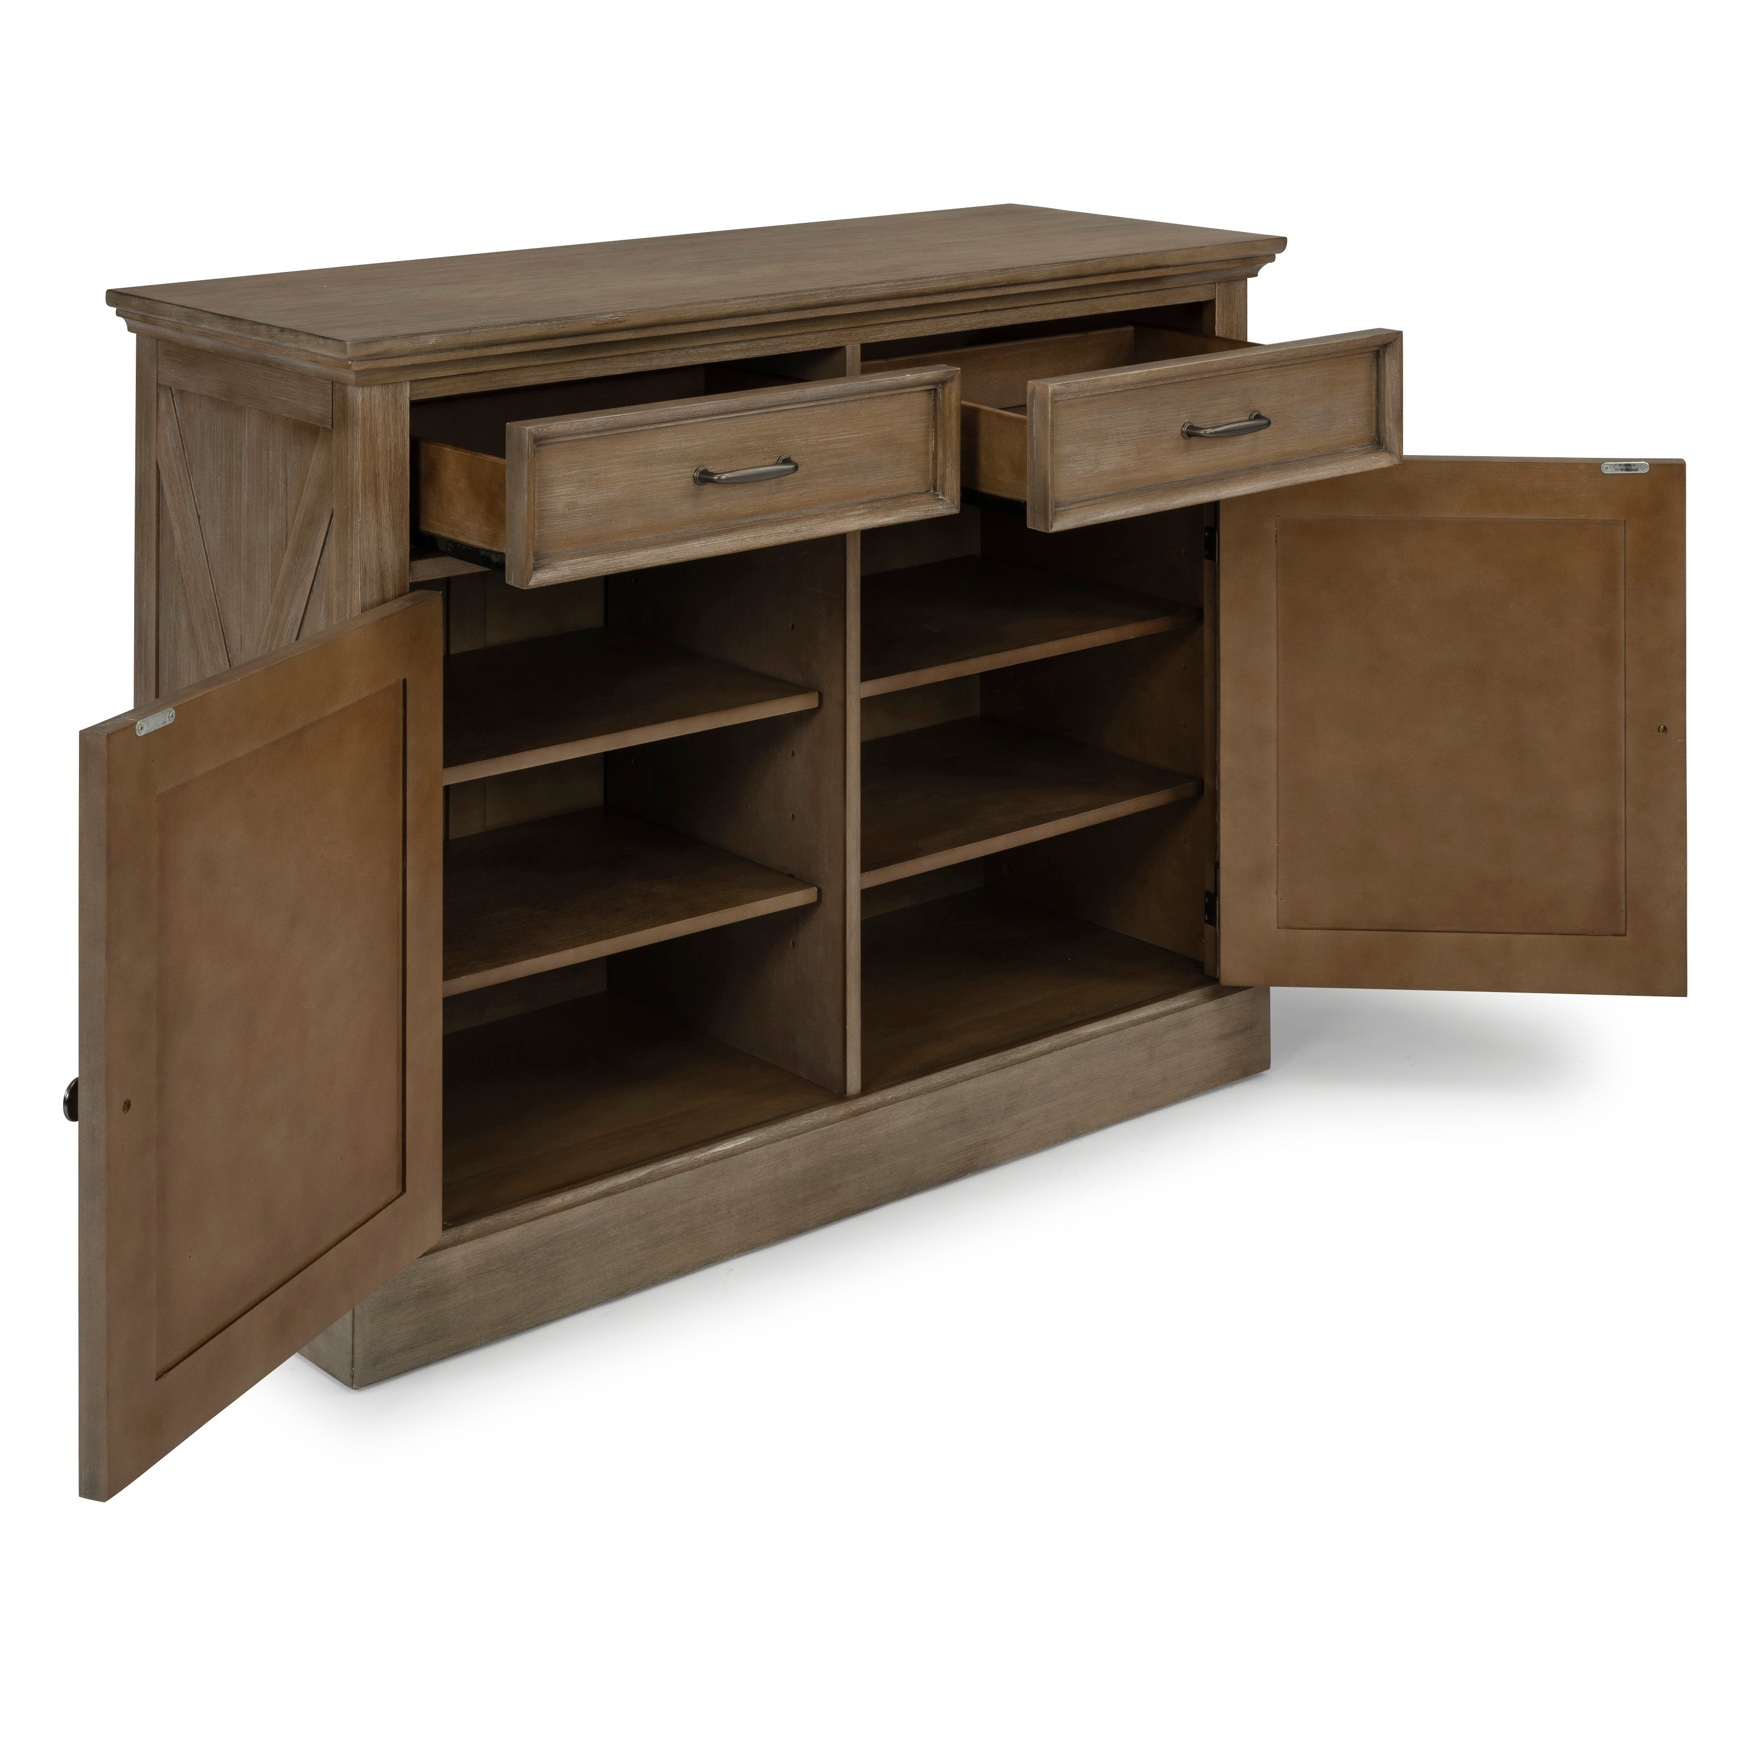 Mountain Lodge Buffet by Home Styles, MULTI GRAY